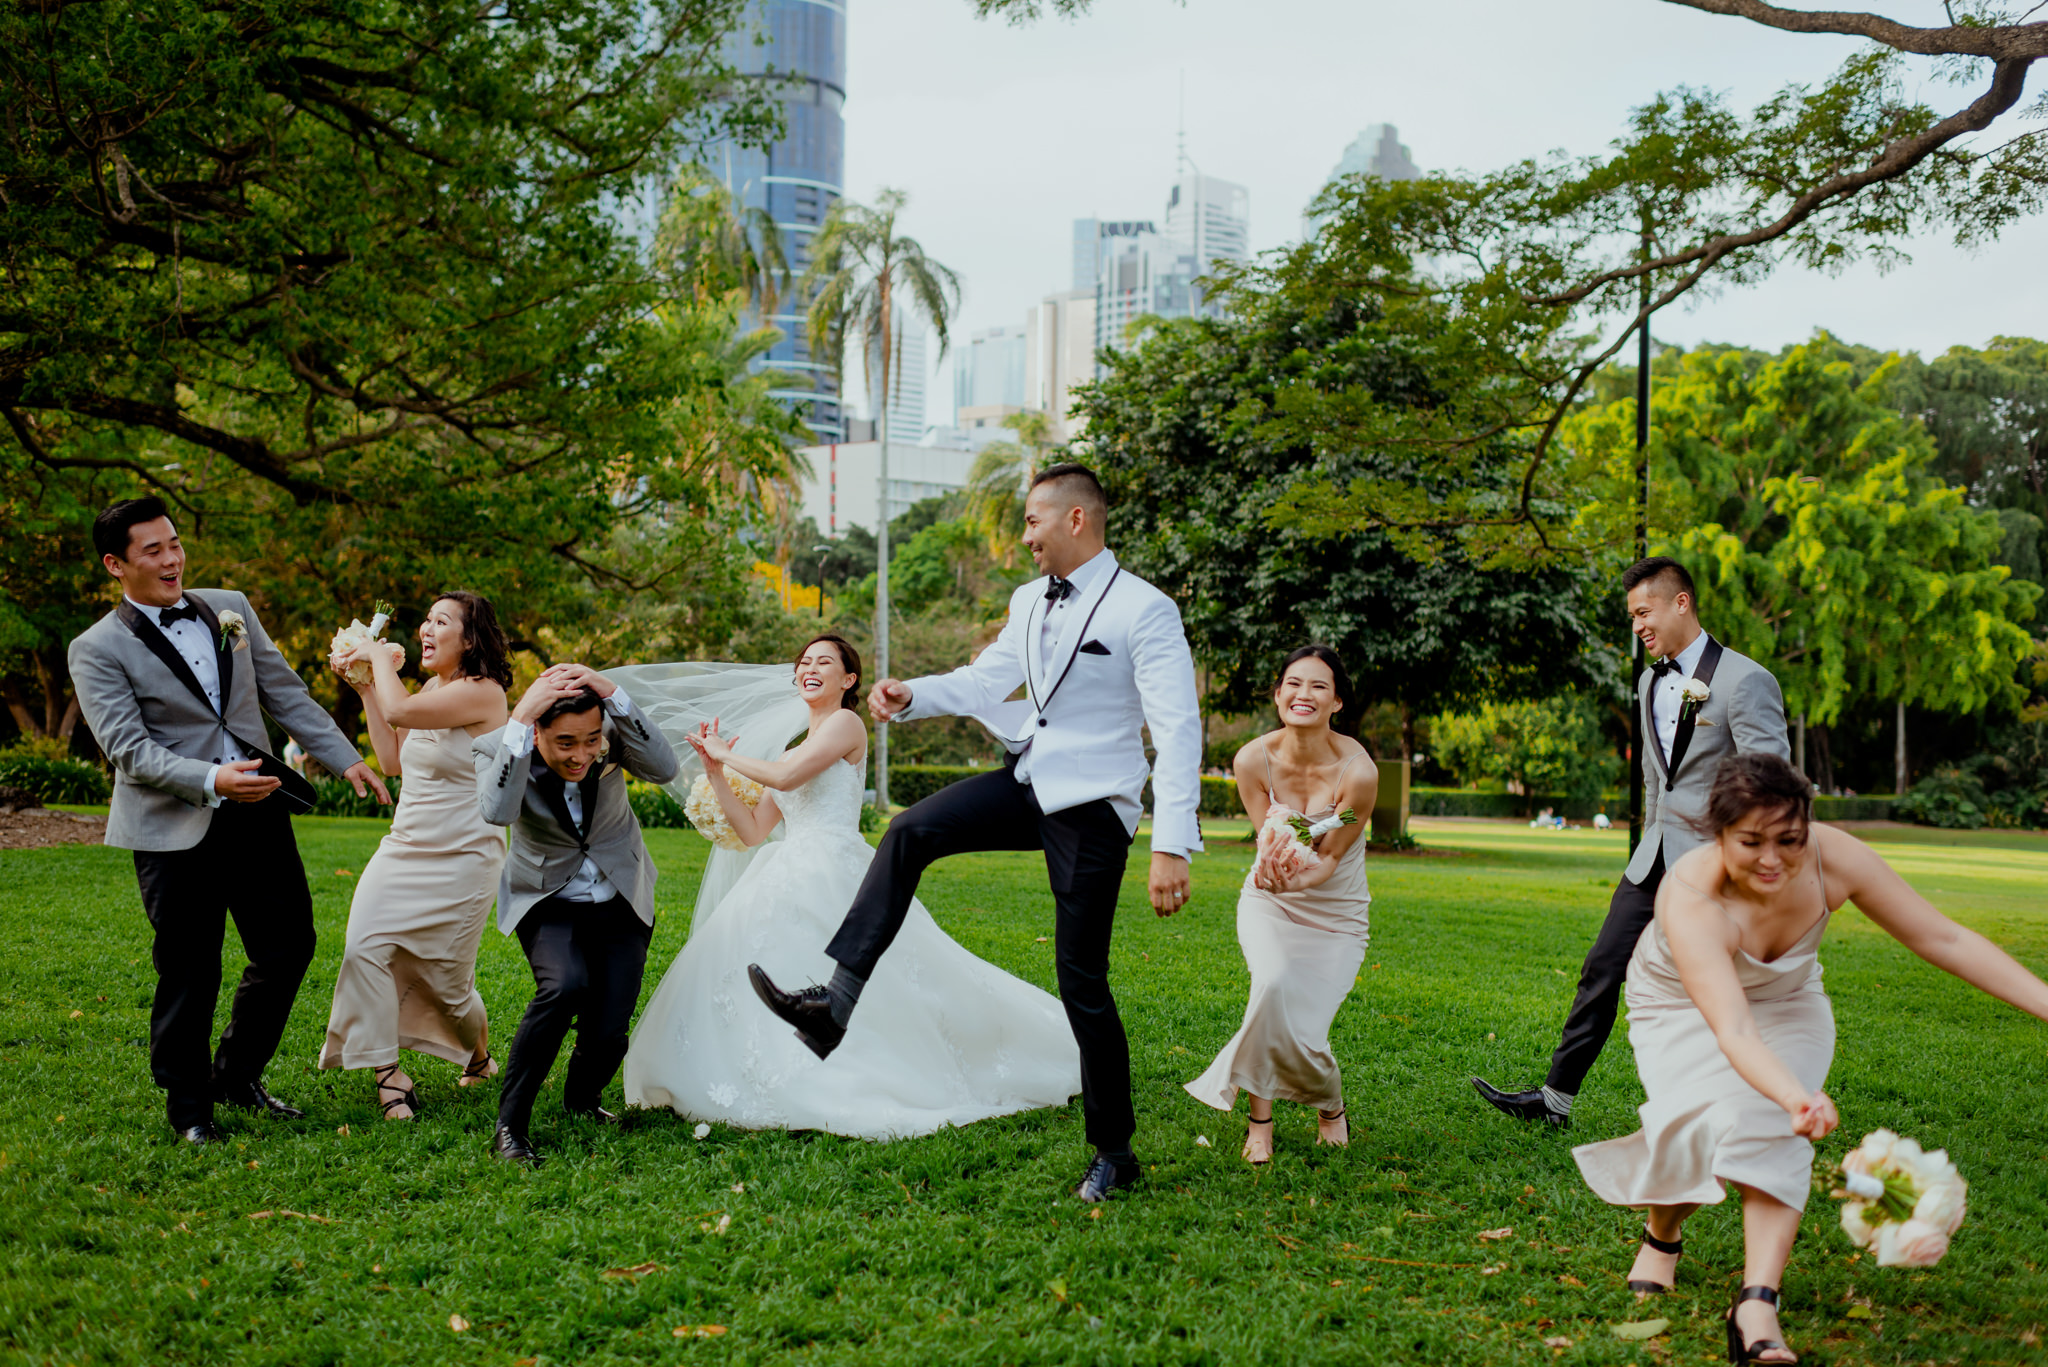 A chaotic group photo of a bridal party catching bouquets